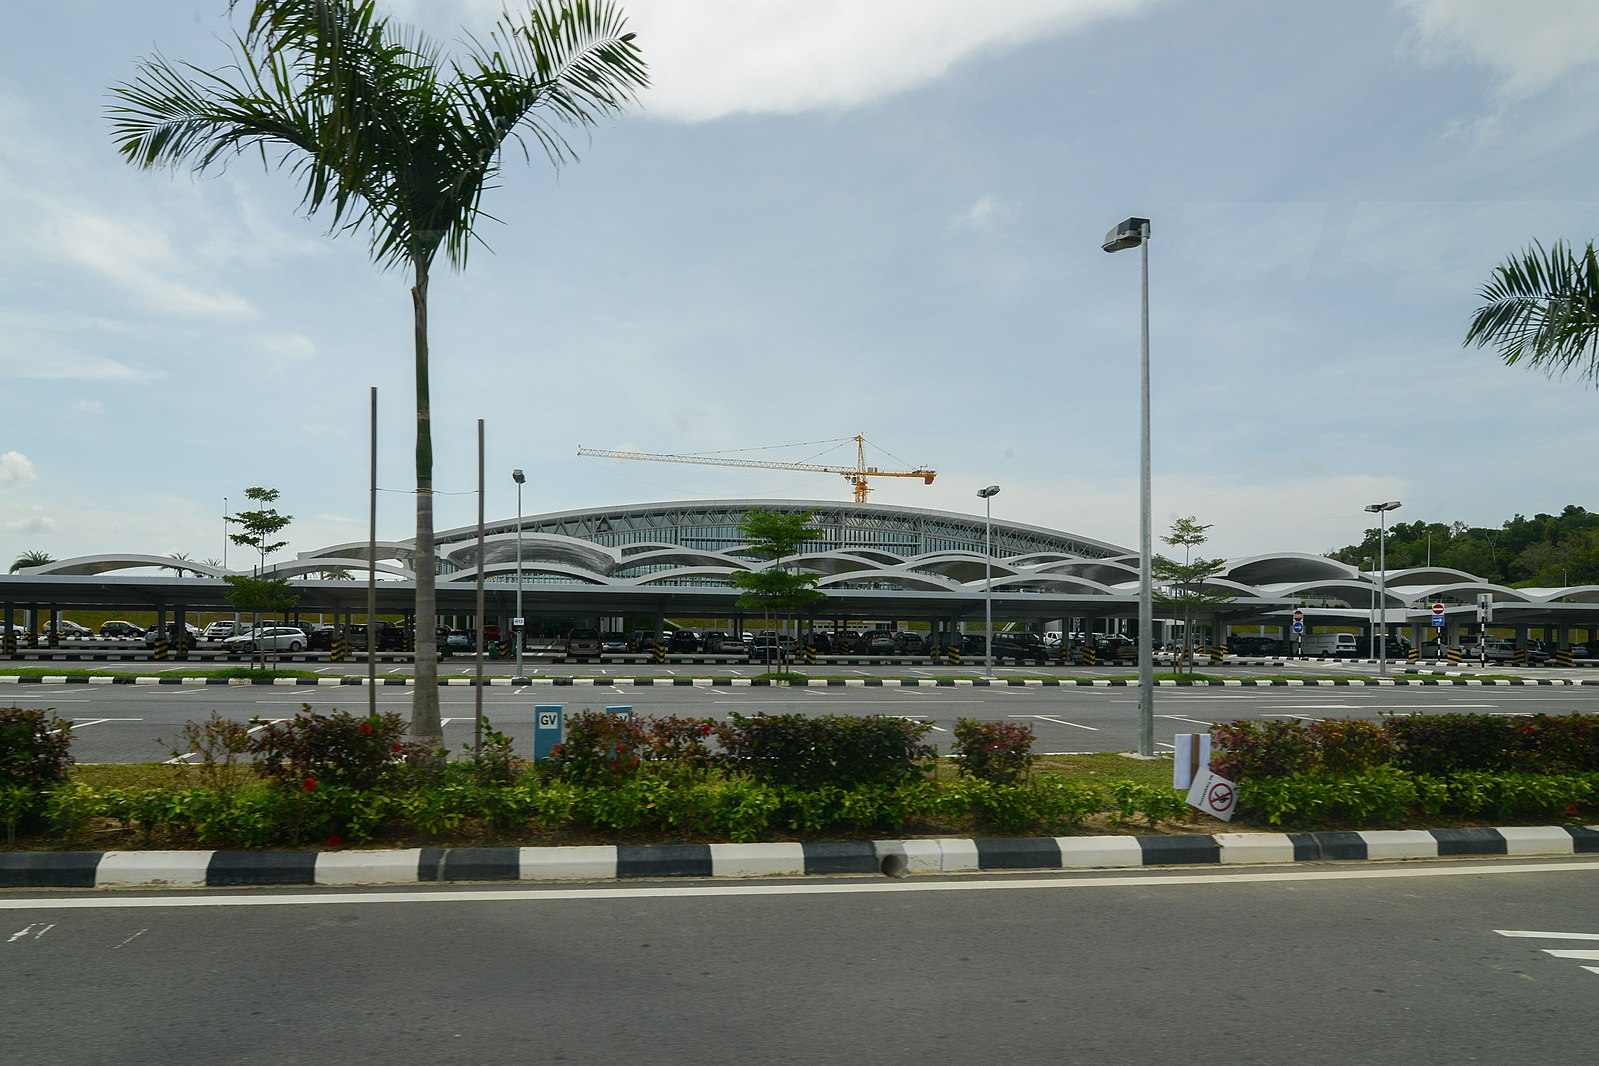 Brunei International Airport (BWN) is the main international gateway to Brunei.